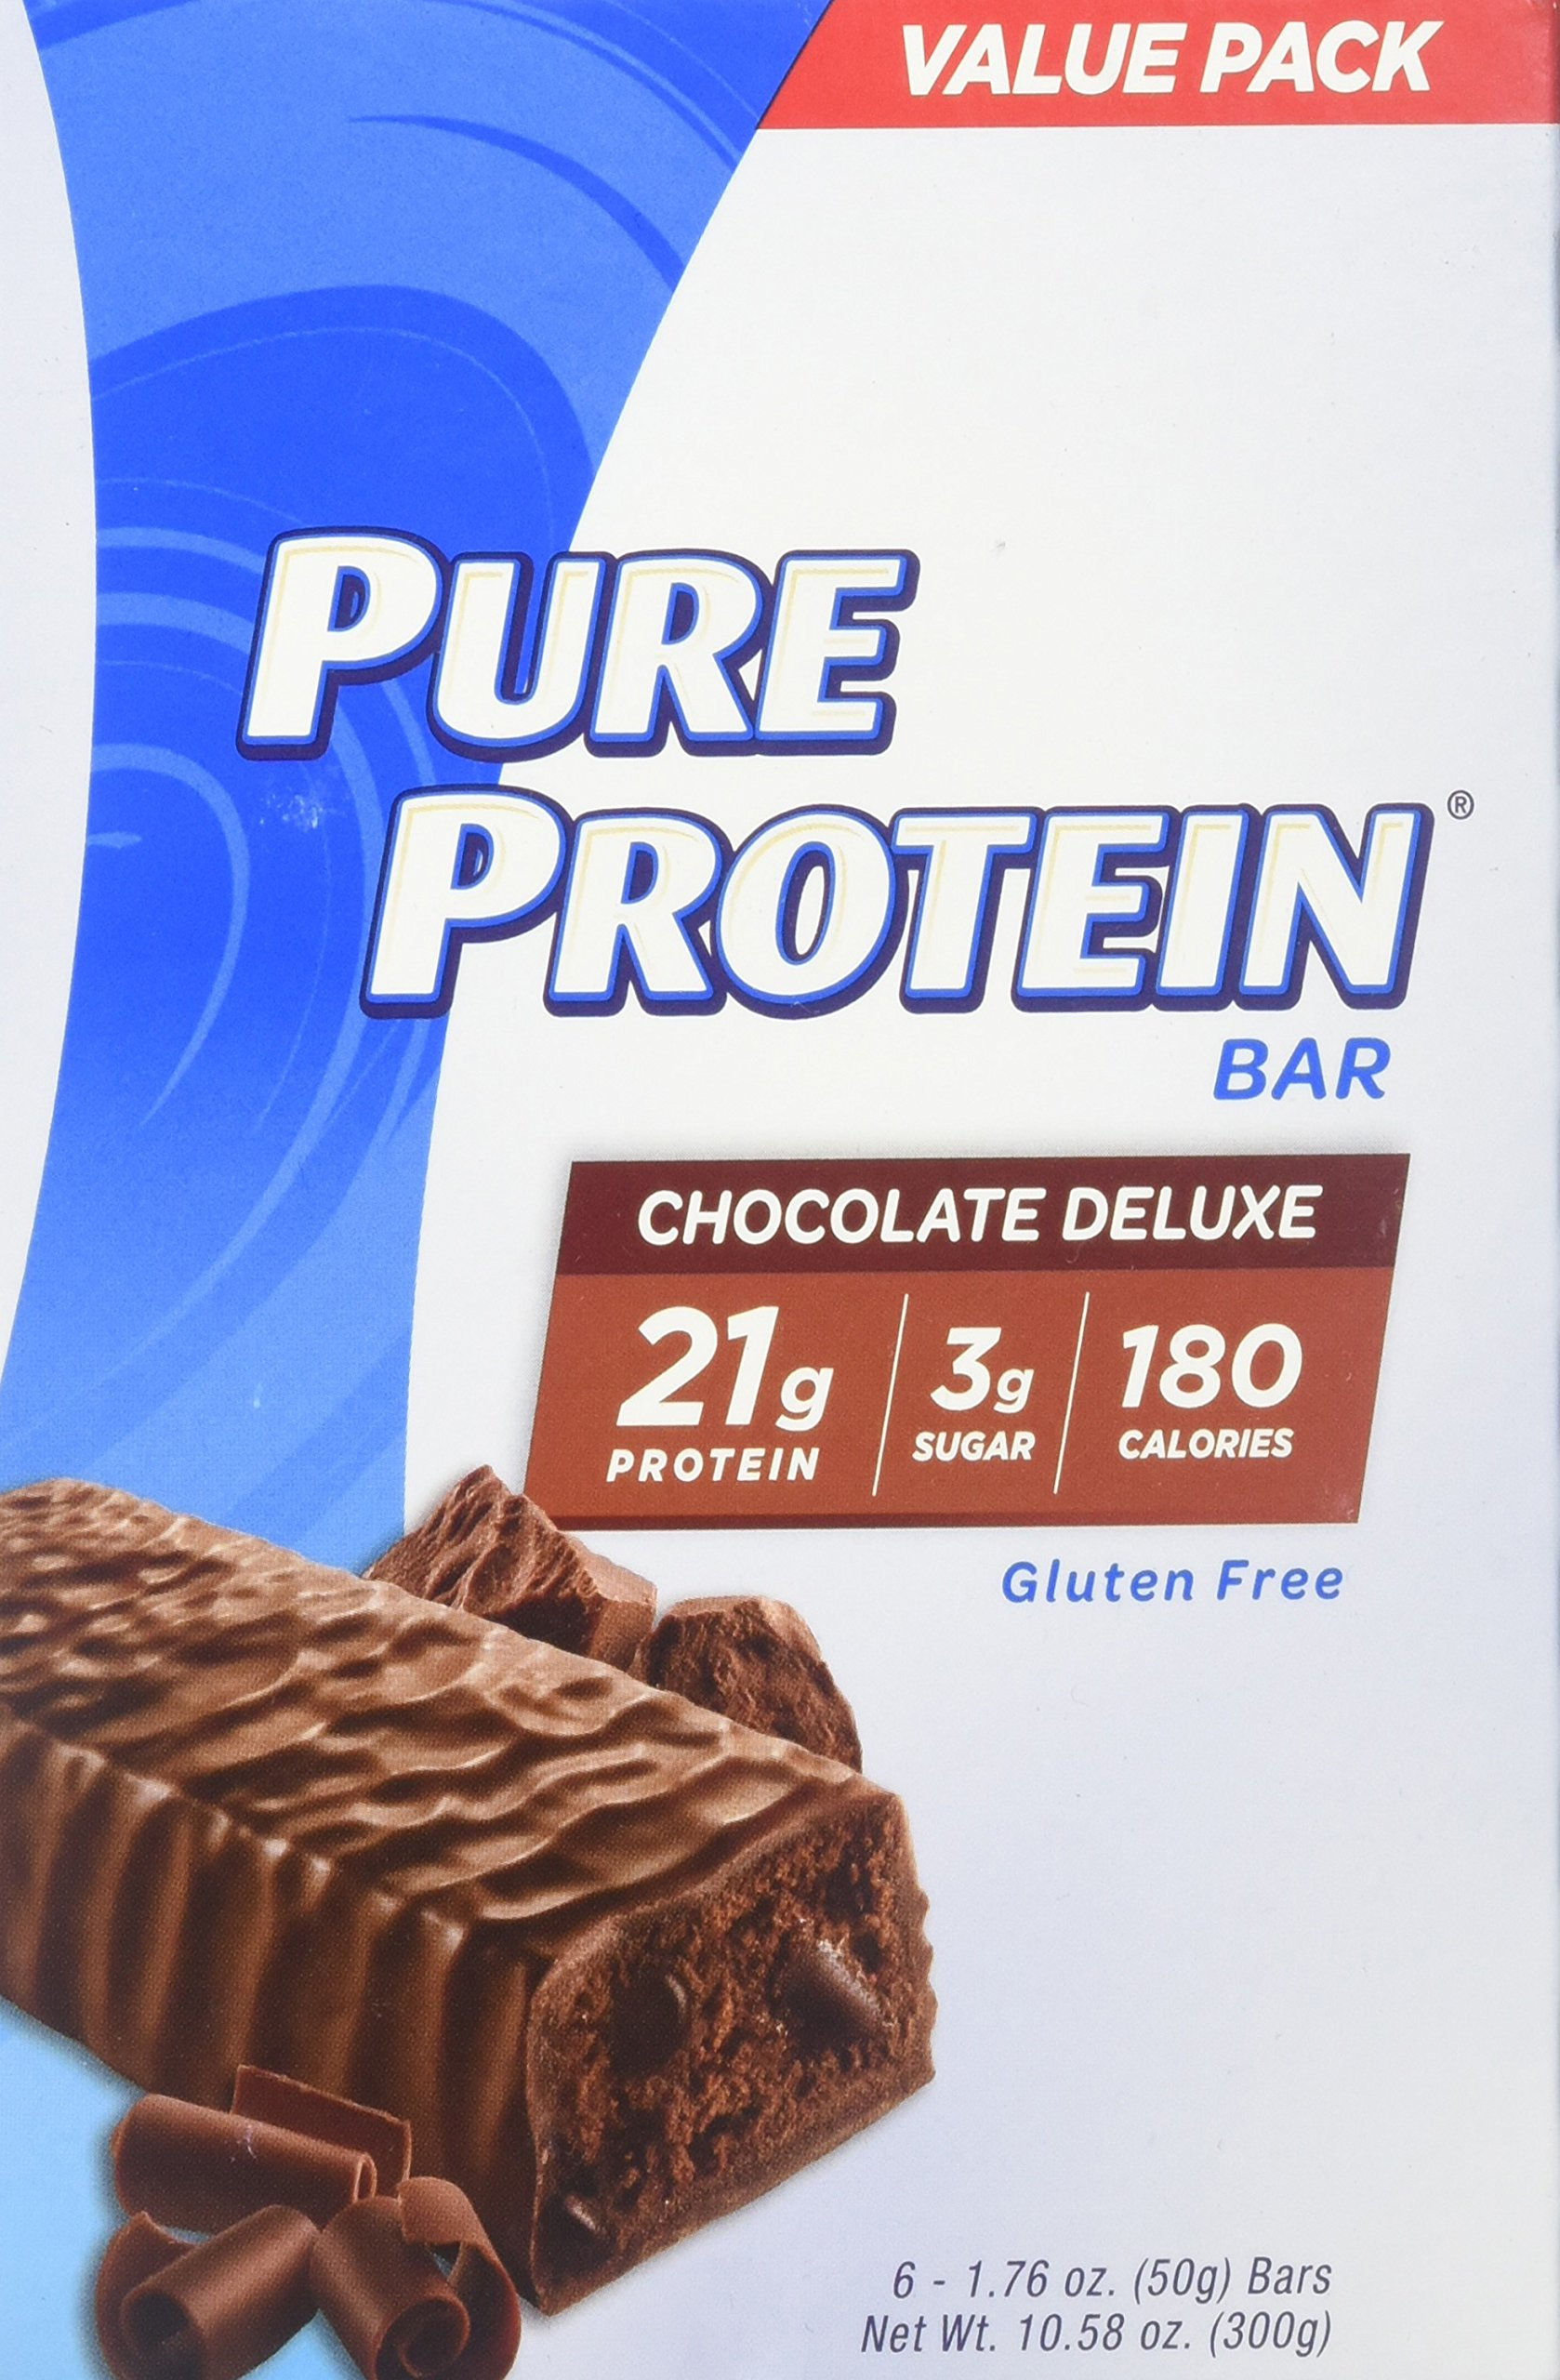 Pure Protein Bars, High Protein, Nutritious Snacks to Support Energy, Low Sugar, Gluten Free, Chocolate Deluxe, 1.76oz, 6 Pack, 2 Pack by Pure Protein